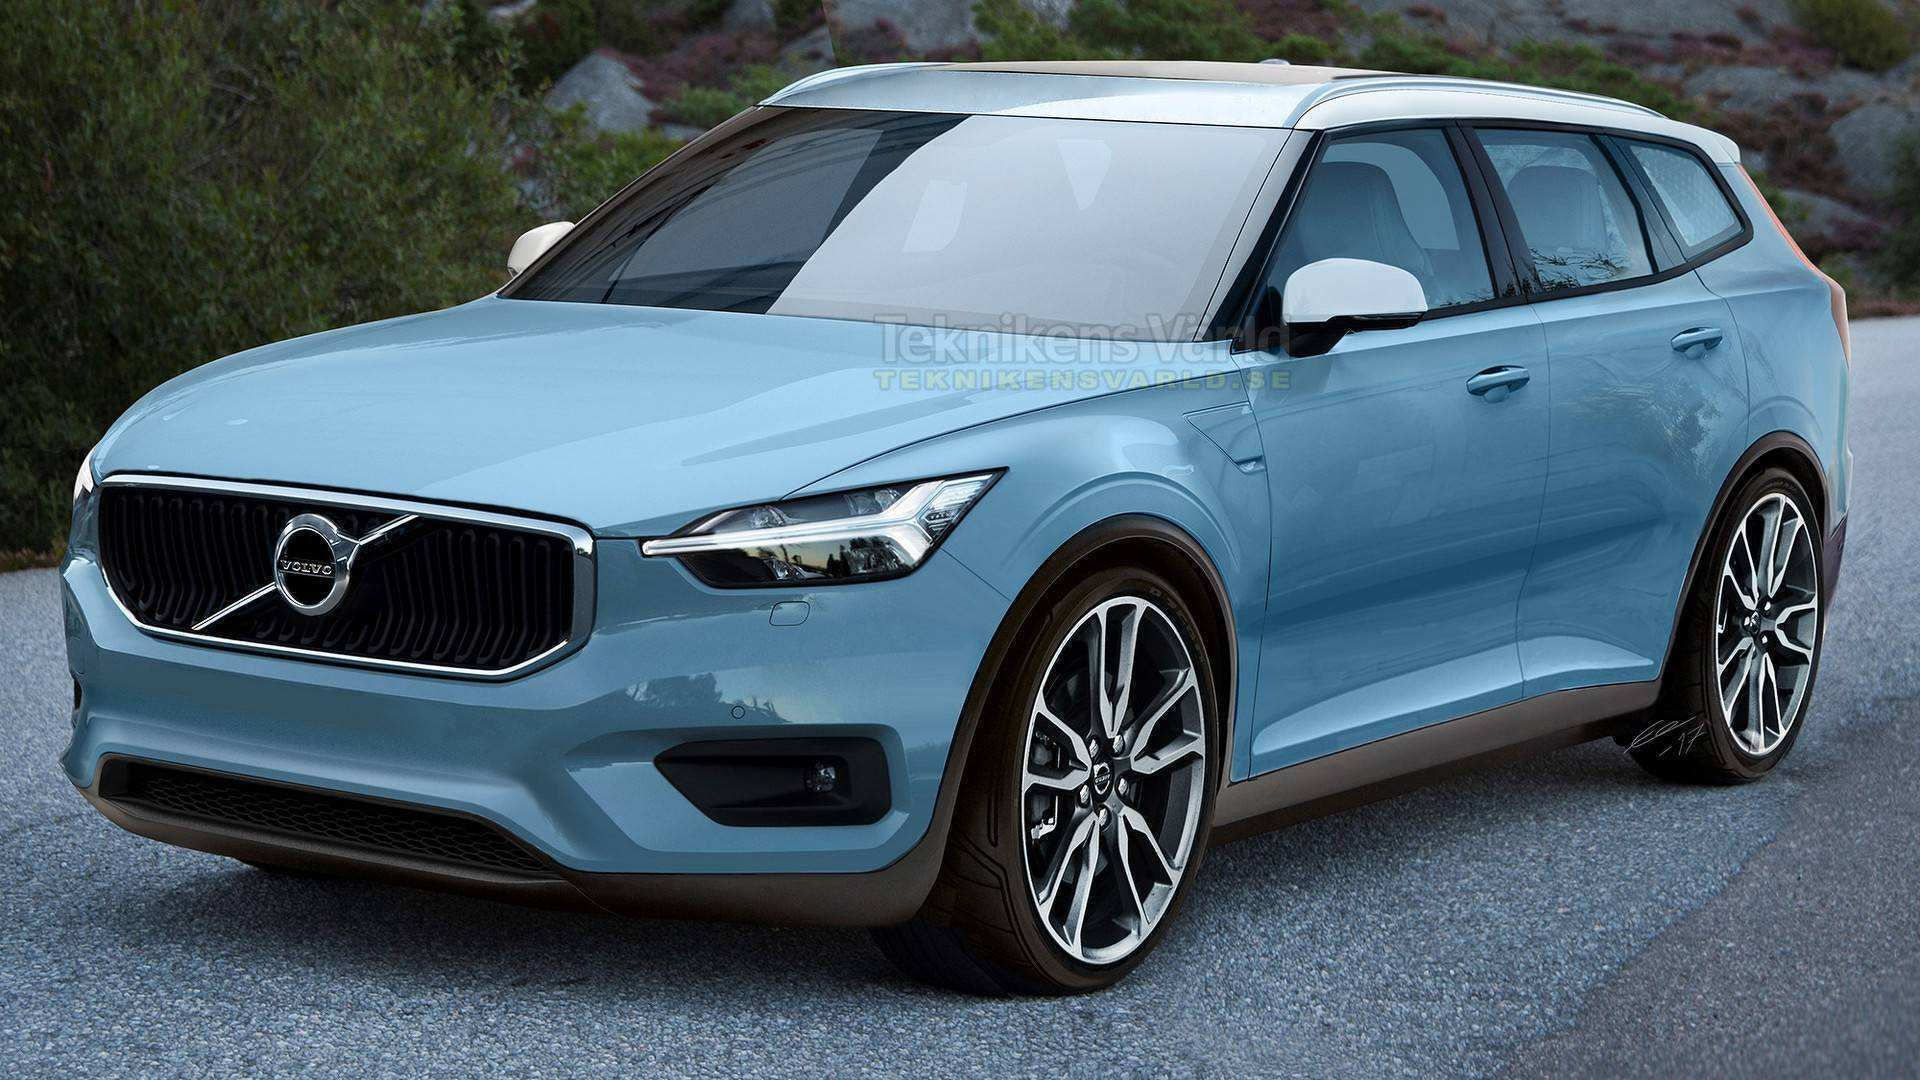 62 All New Upcoming Volvo Cars 2020 Concept